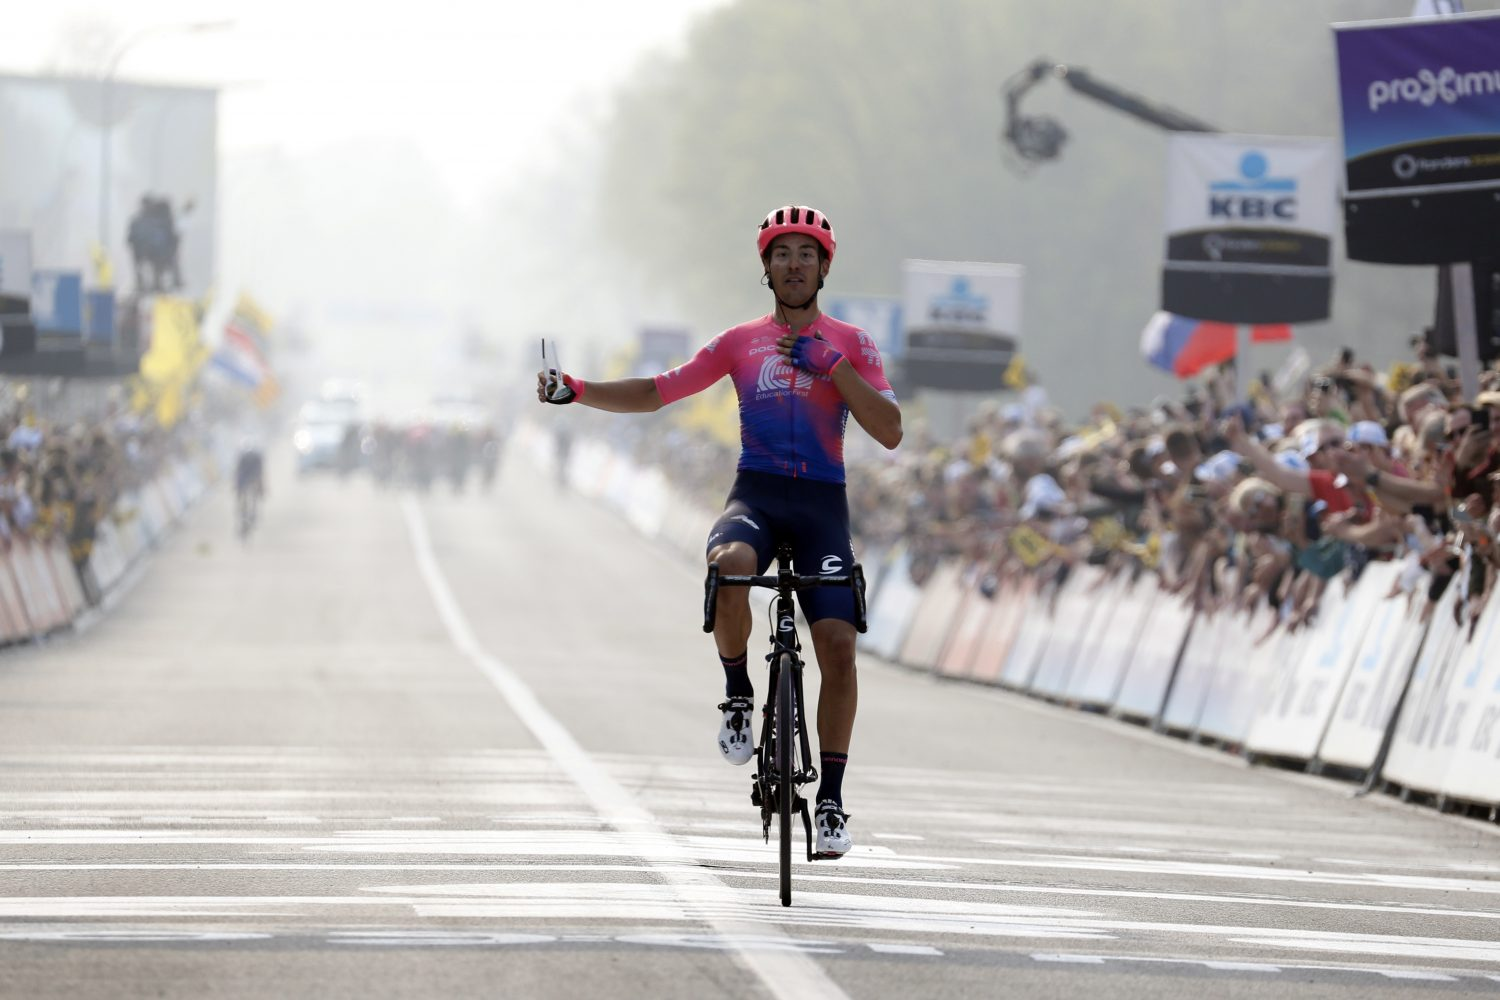 Alberto Bettiol takes first career victory with spectacular solo ride at Tour of Flanders 2019